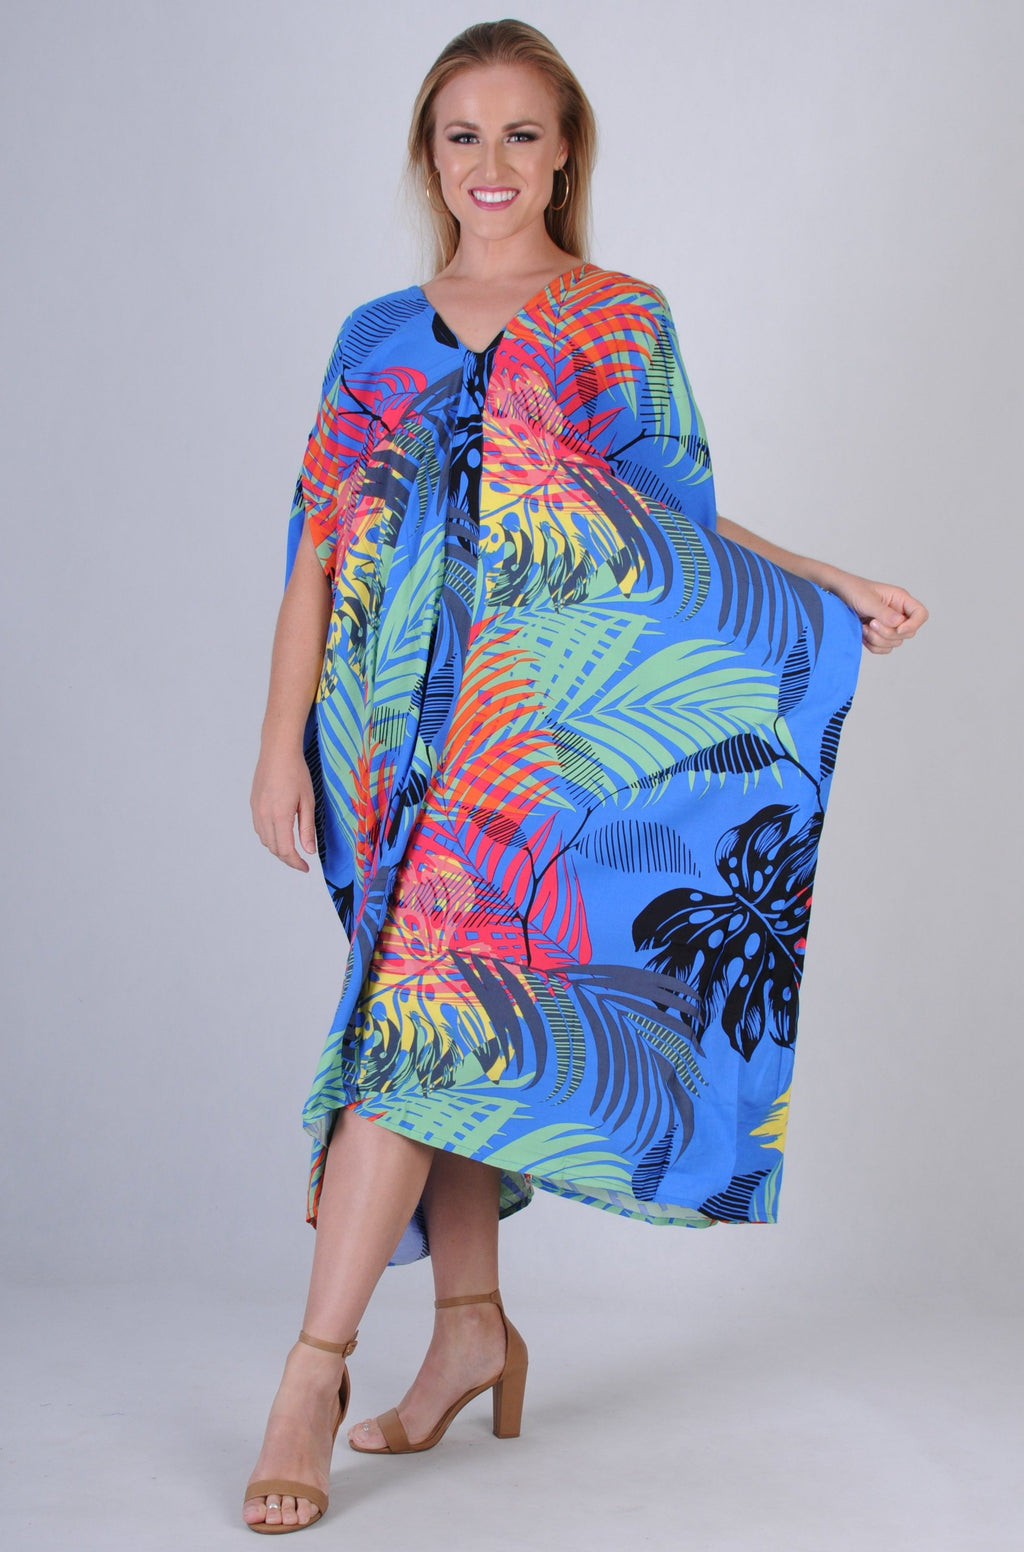 VBLD348 - CUSHLA DRESS - ISLAND PALM COBALT